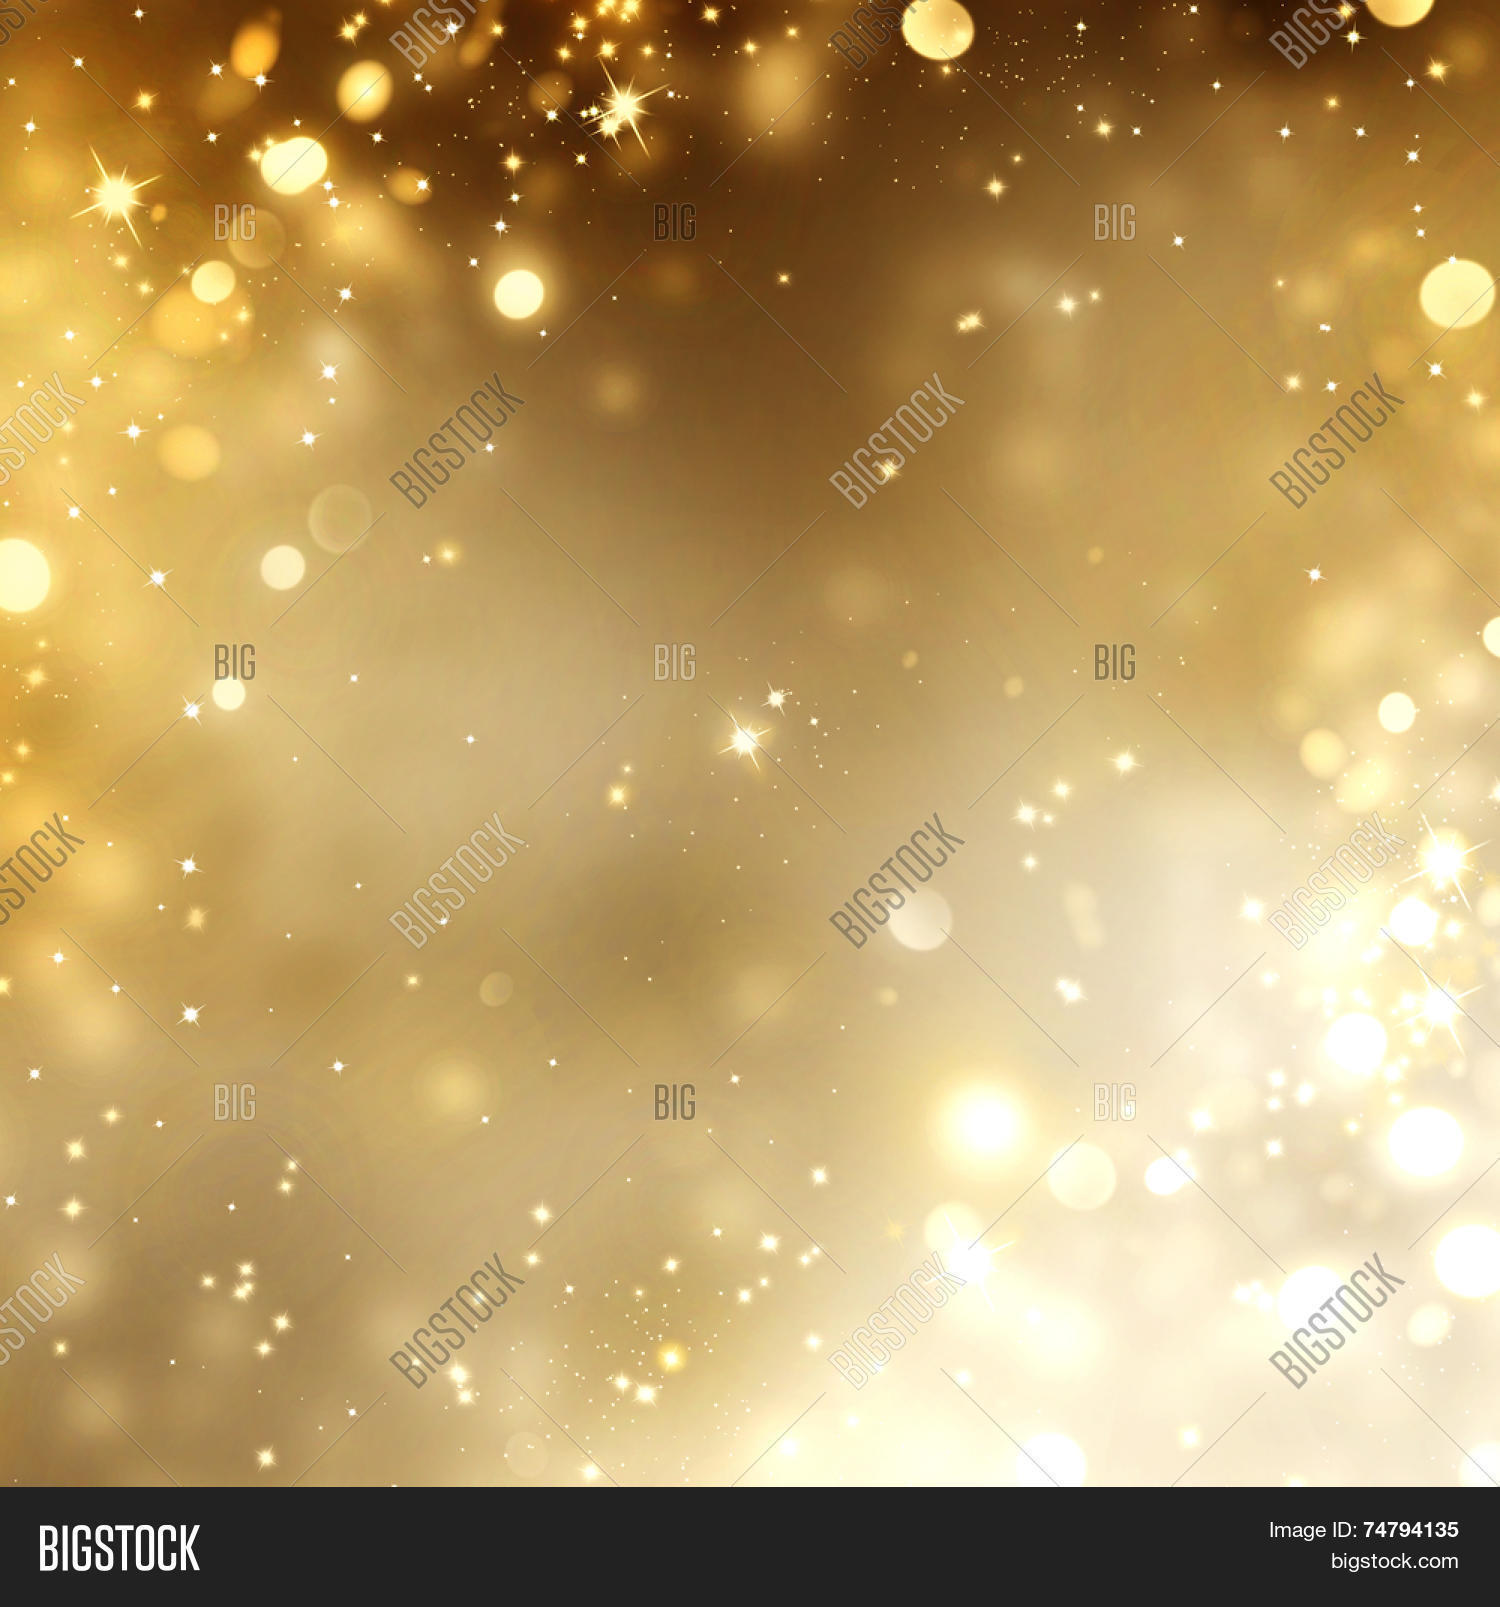 Christmas Gold Background. Golden Holiday glowing Abstract Glitter Defocused Background With ...